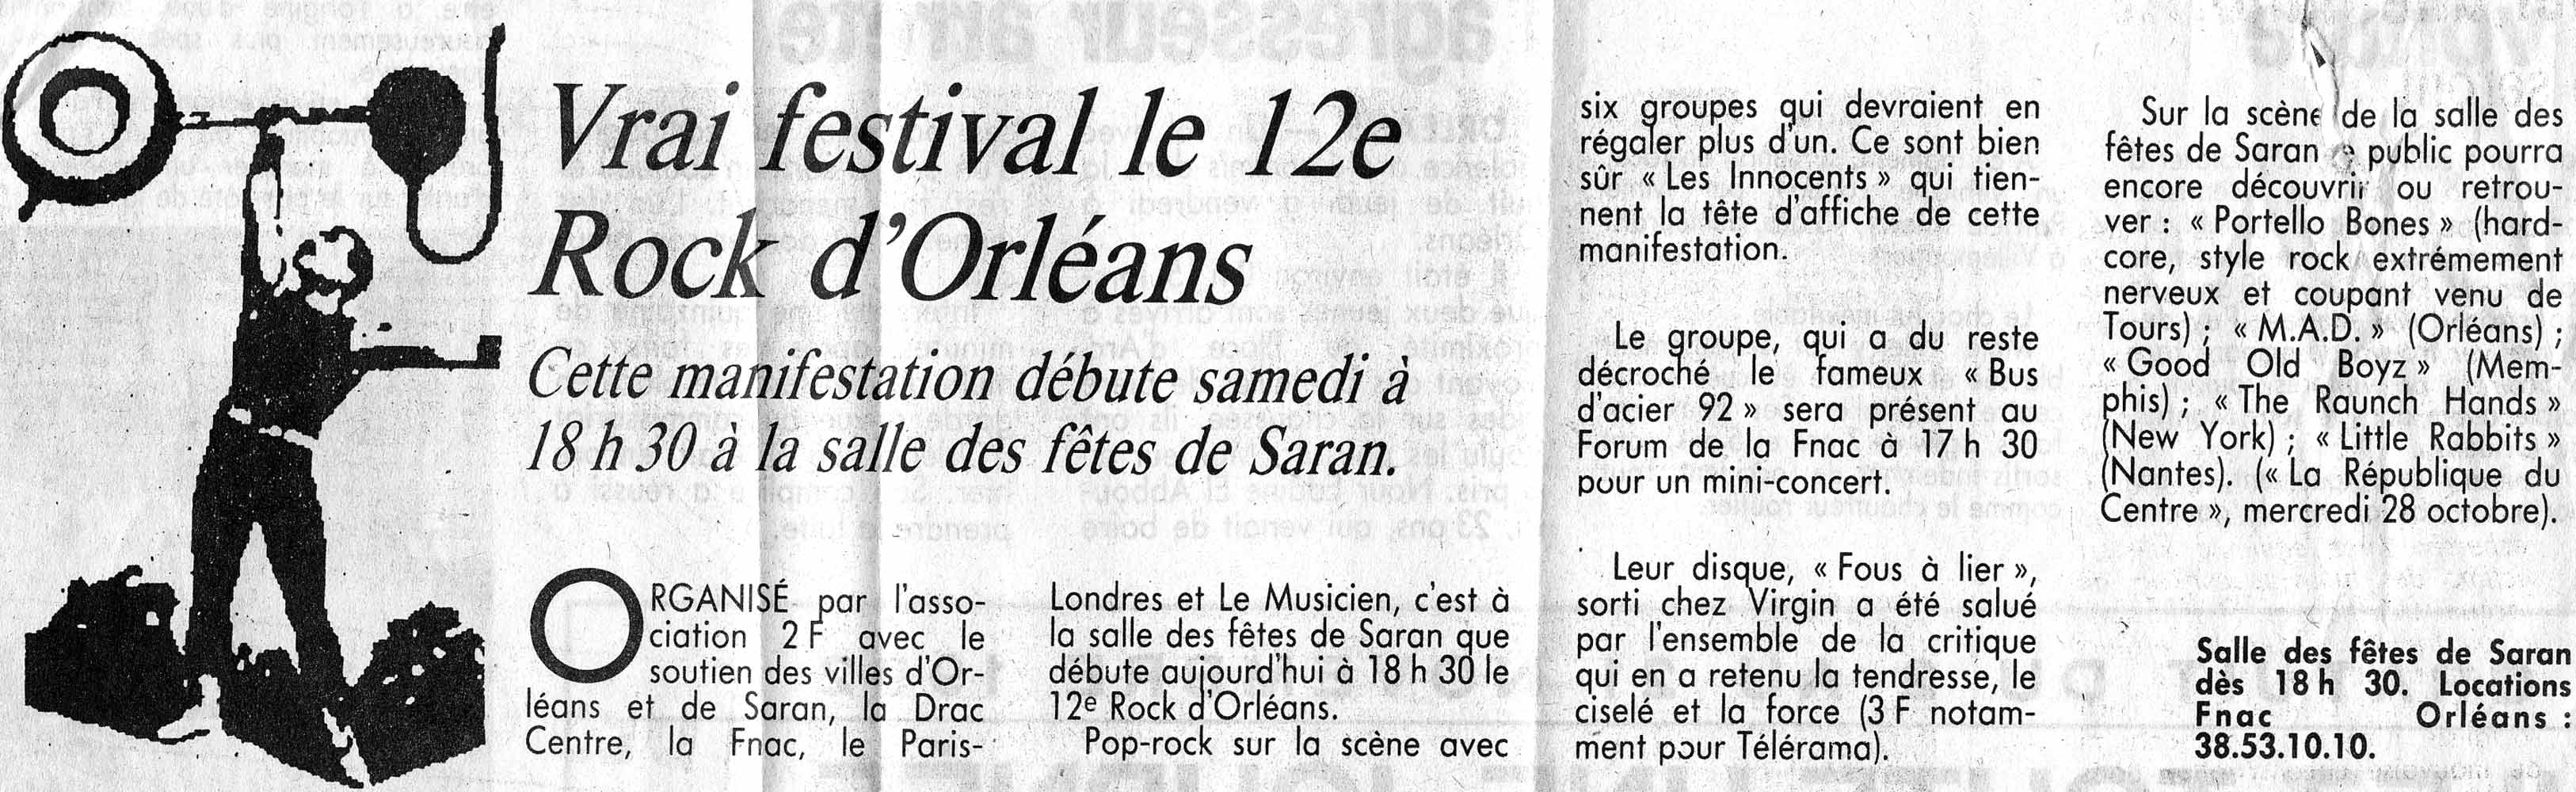 1992_10_31_Article_02